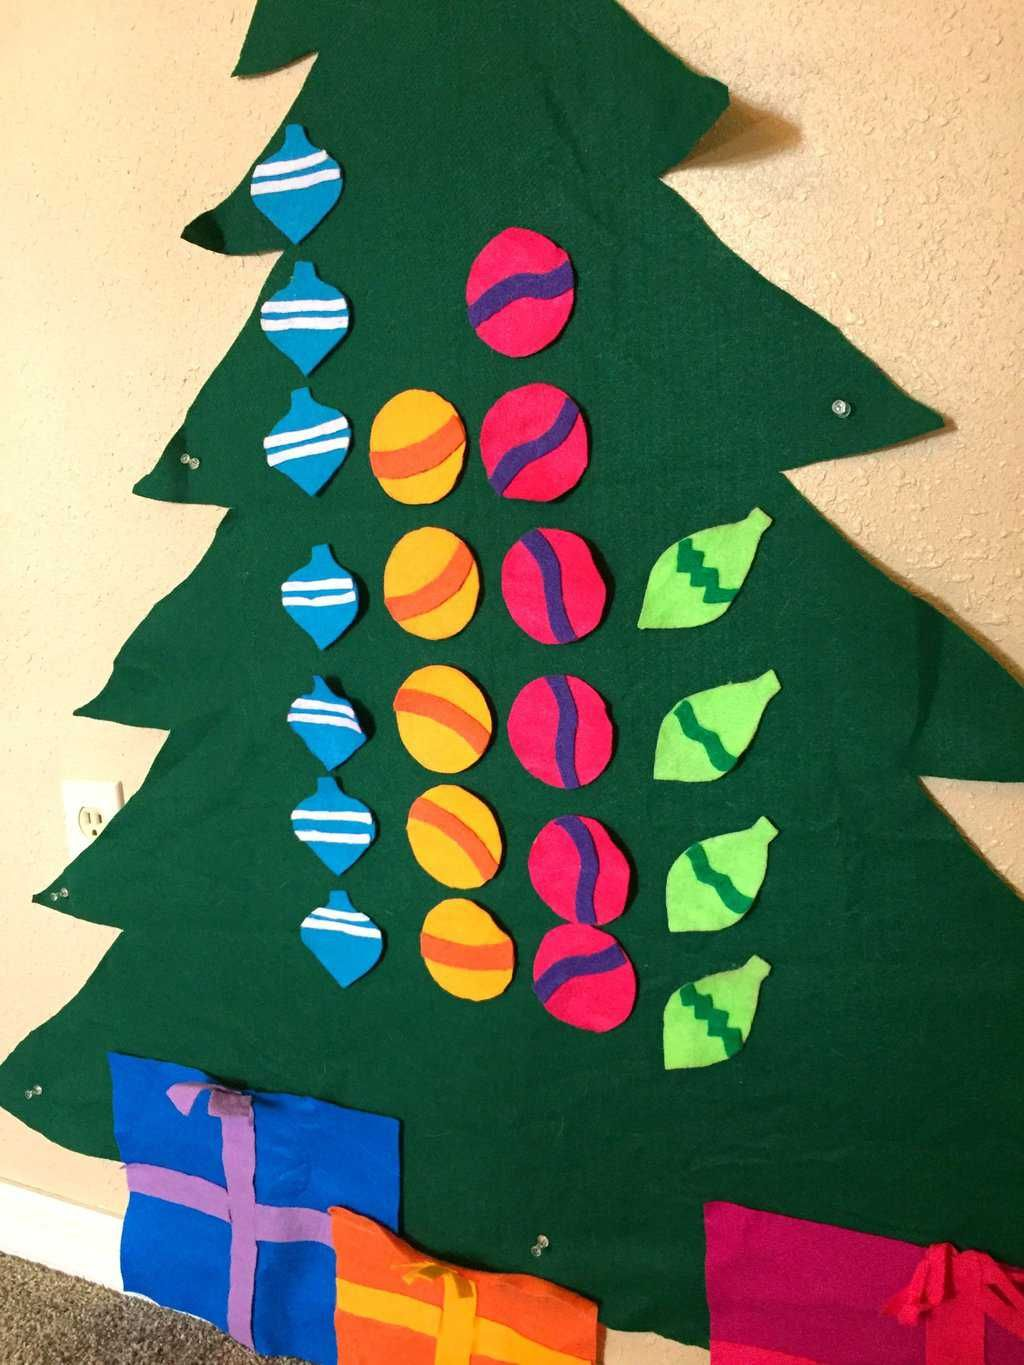 3 Simple Toddler Learning Games To Try With Your Felt Toddler Christmas Tree Toddler Christmas Tree Toddler Christmas Preschool Christmas Activities